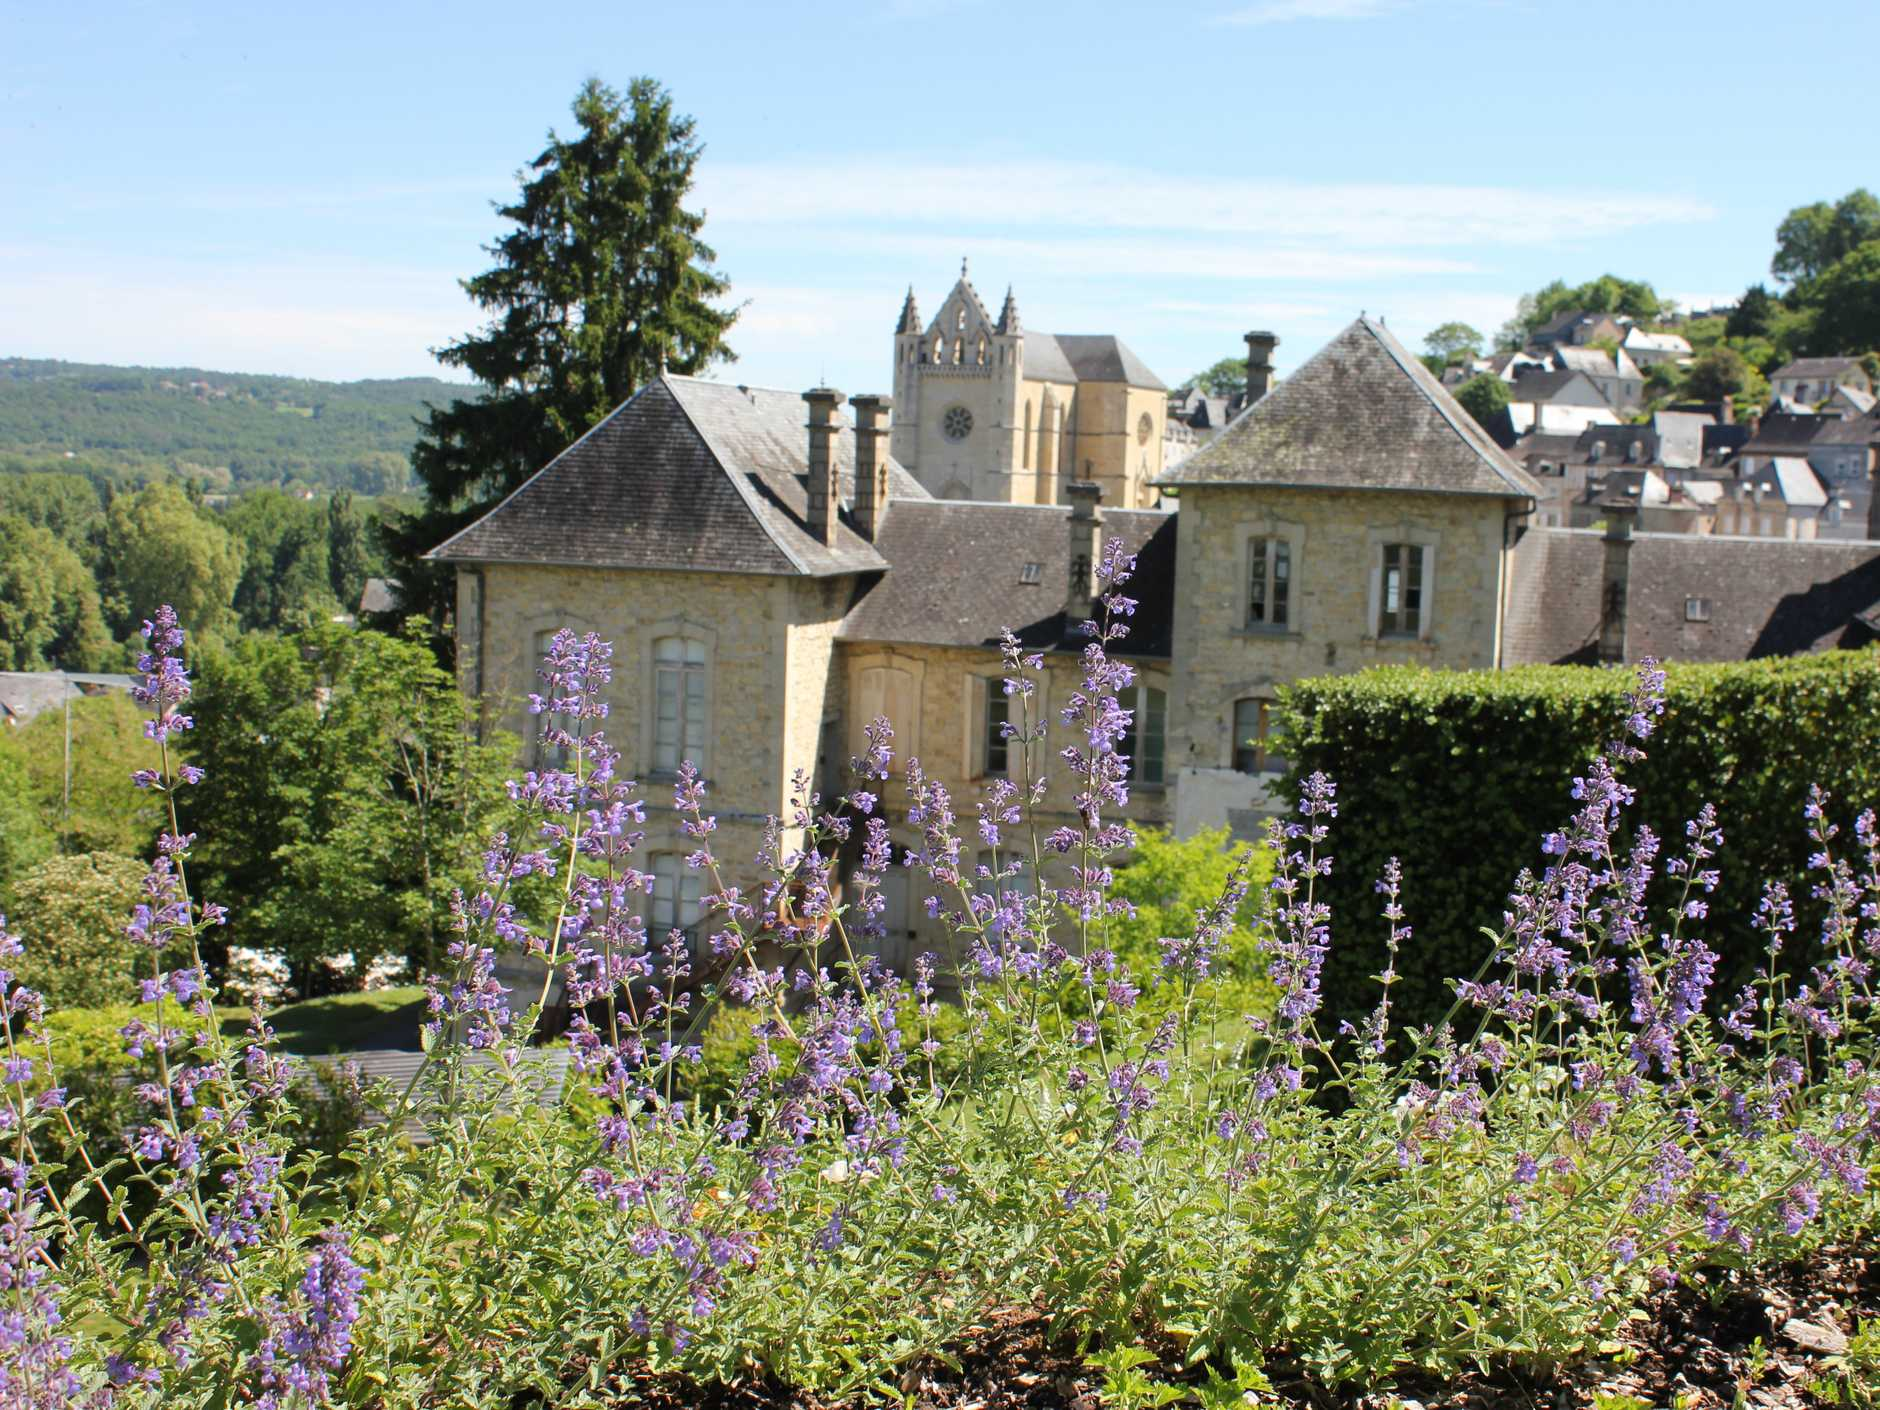 BOTANICA TOURS: The gardens of a Bordeaux village in France.